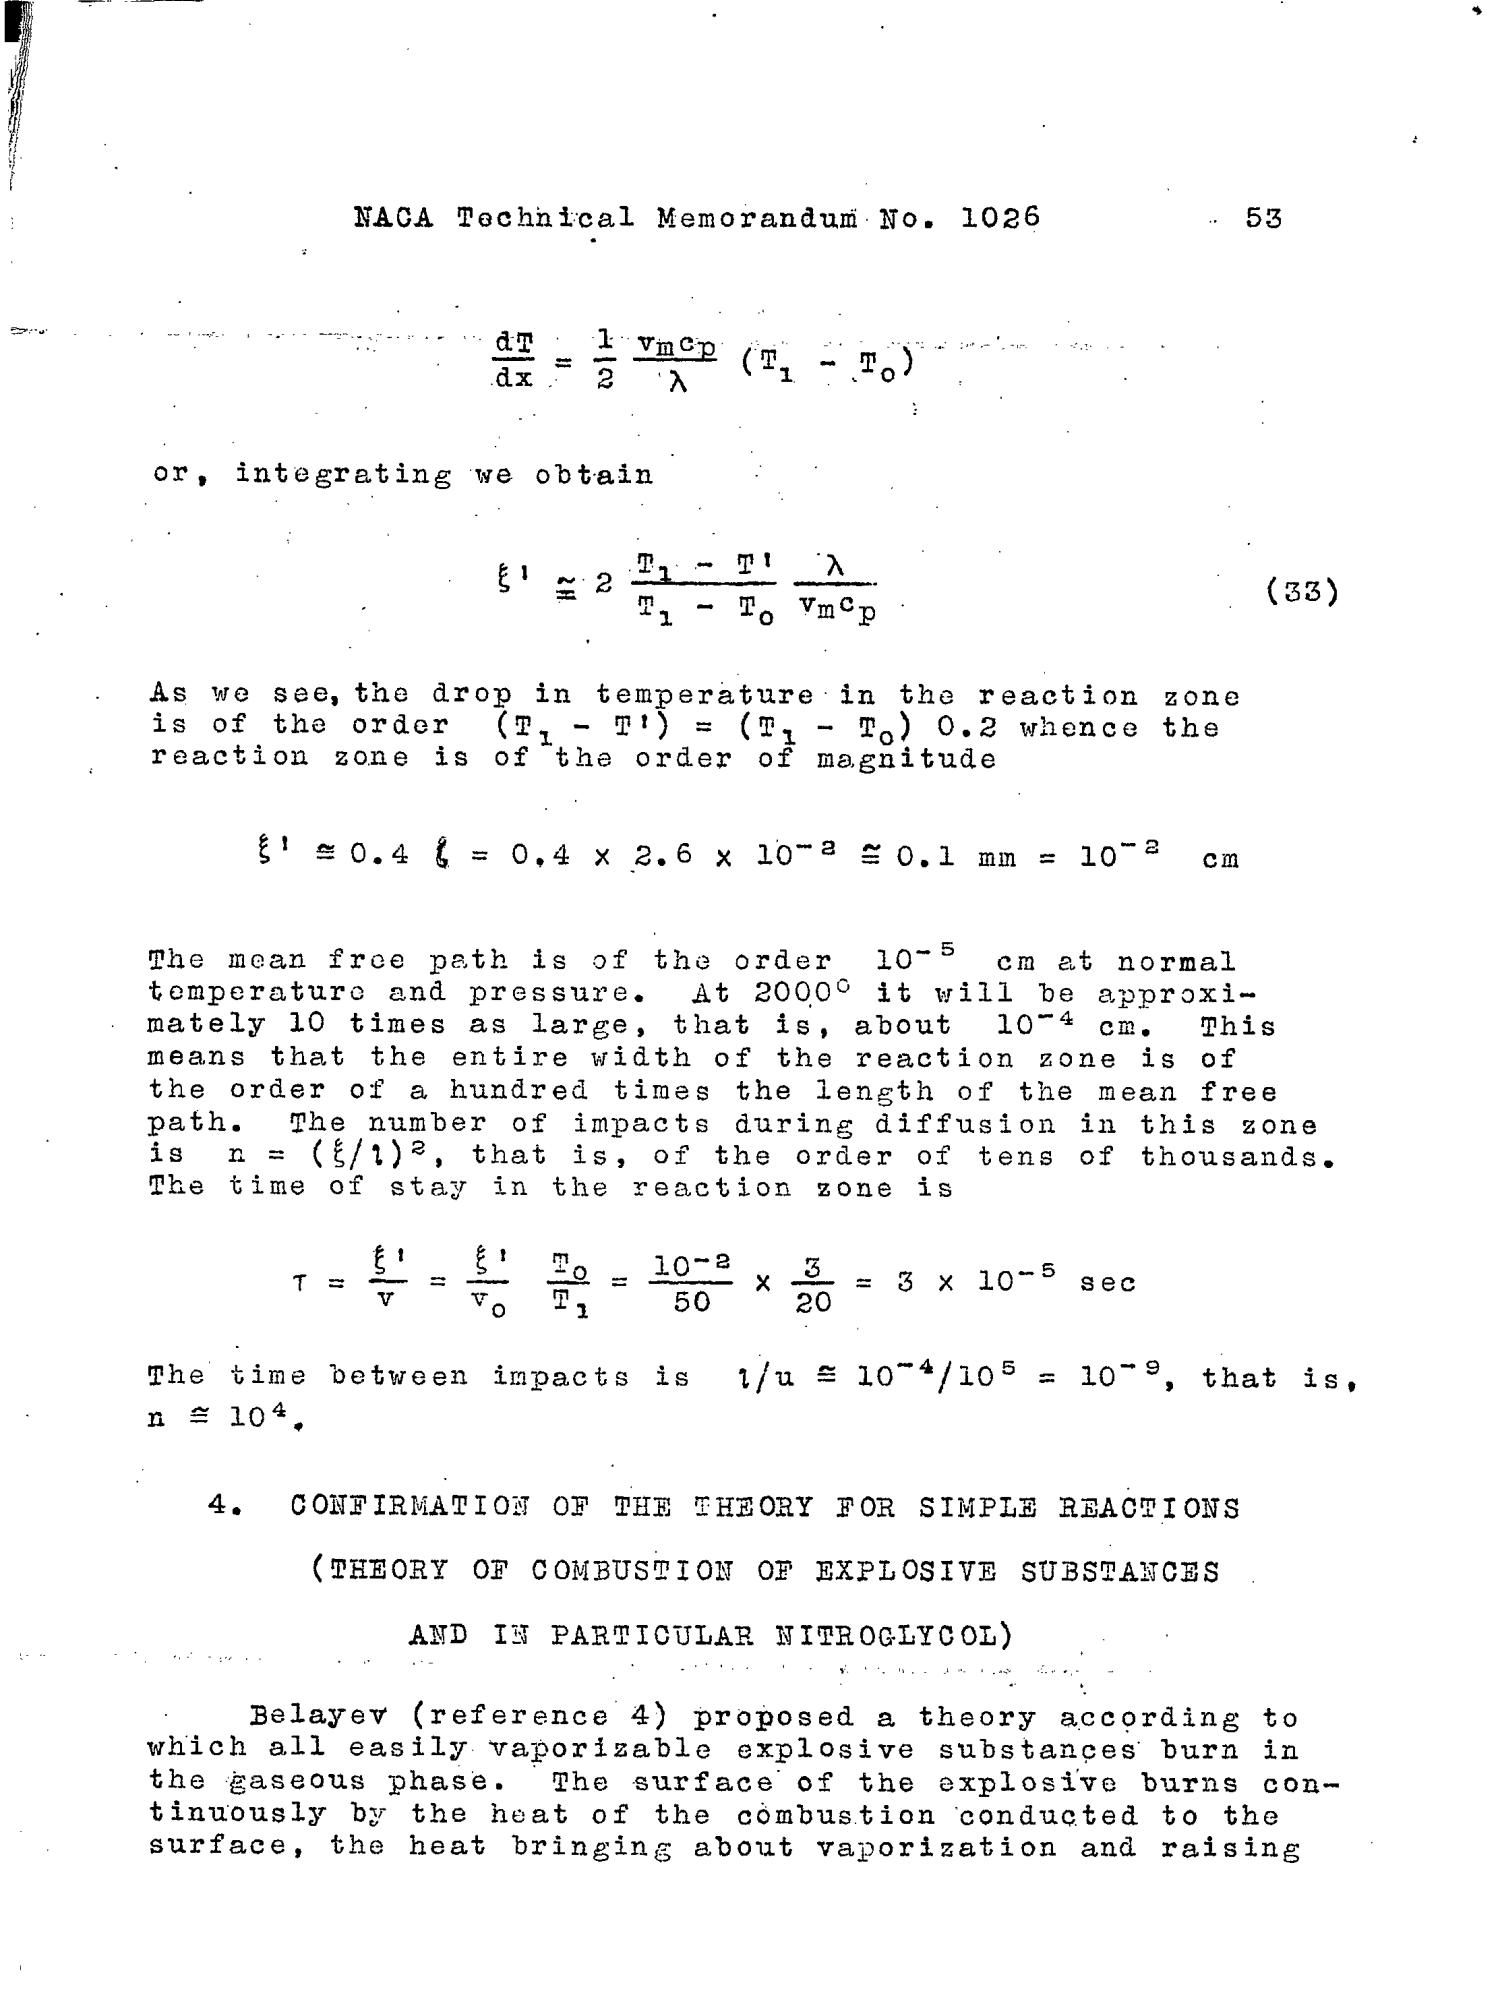 Thermal Theory Of Combustion And Explosion 3 Theory Of Normal Flame Propagation Page 54 Of 80 Unt Digital Library